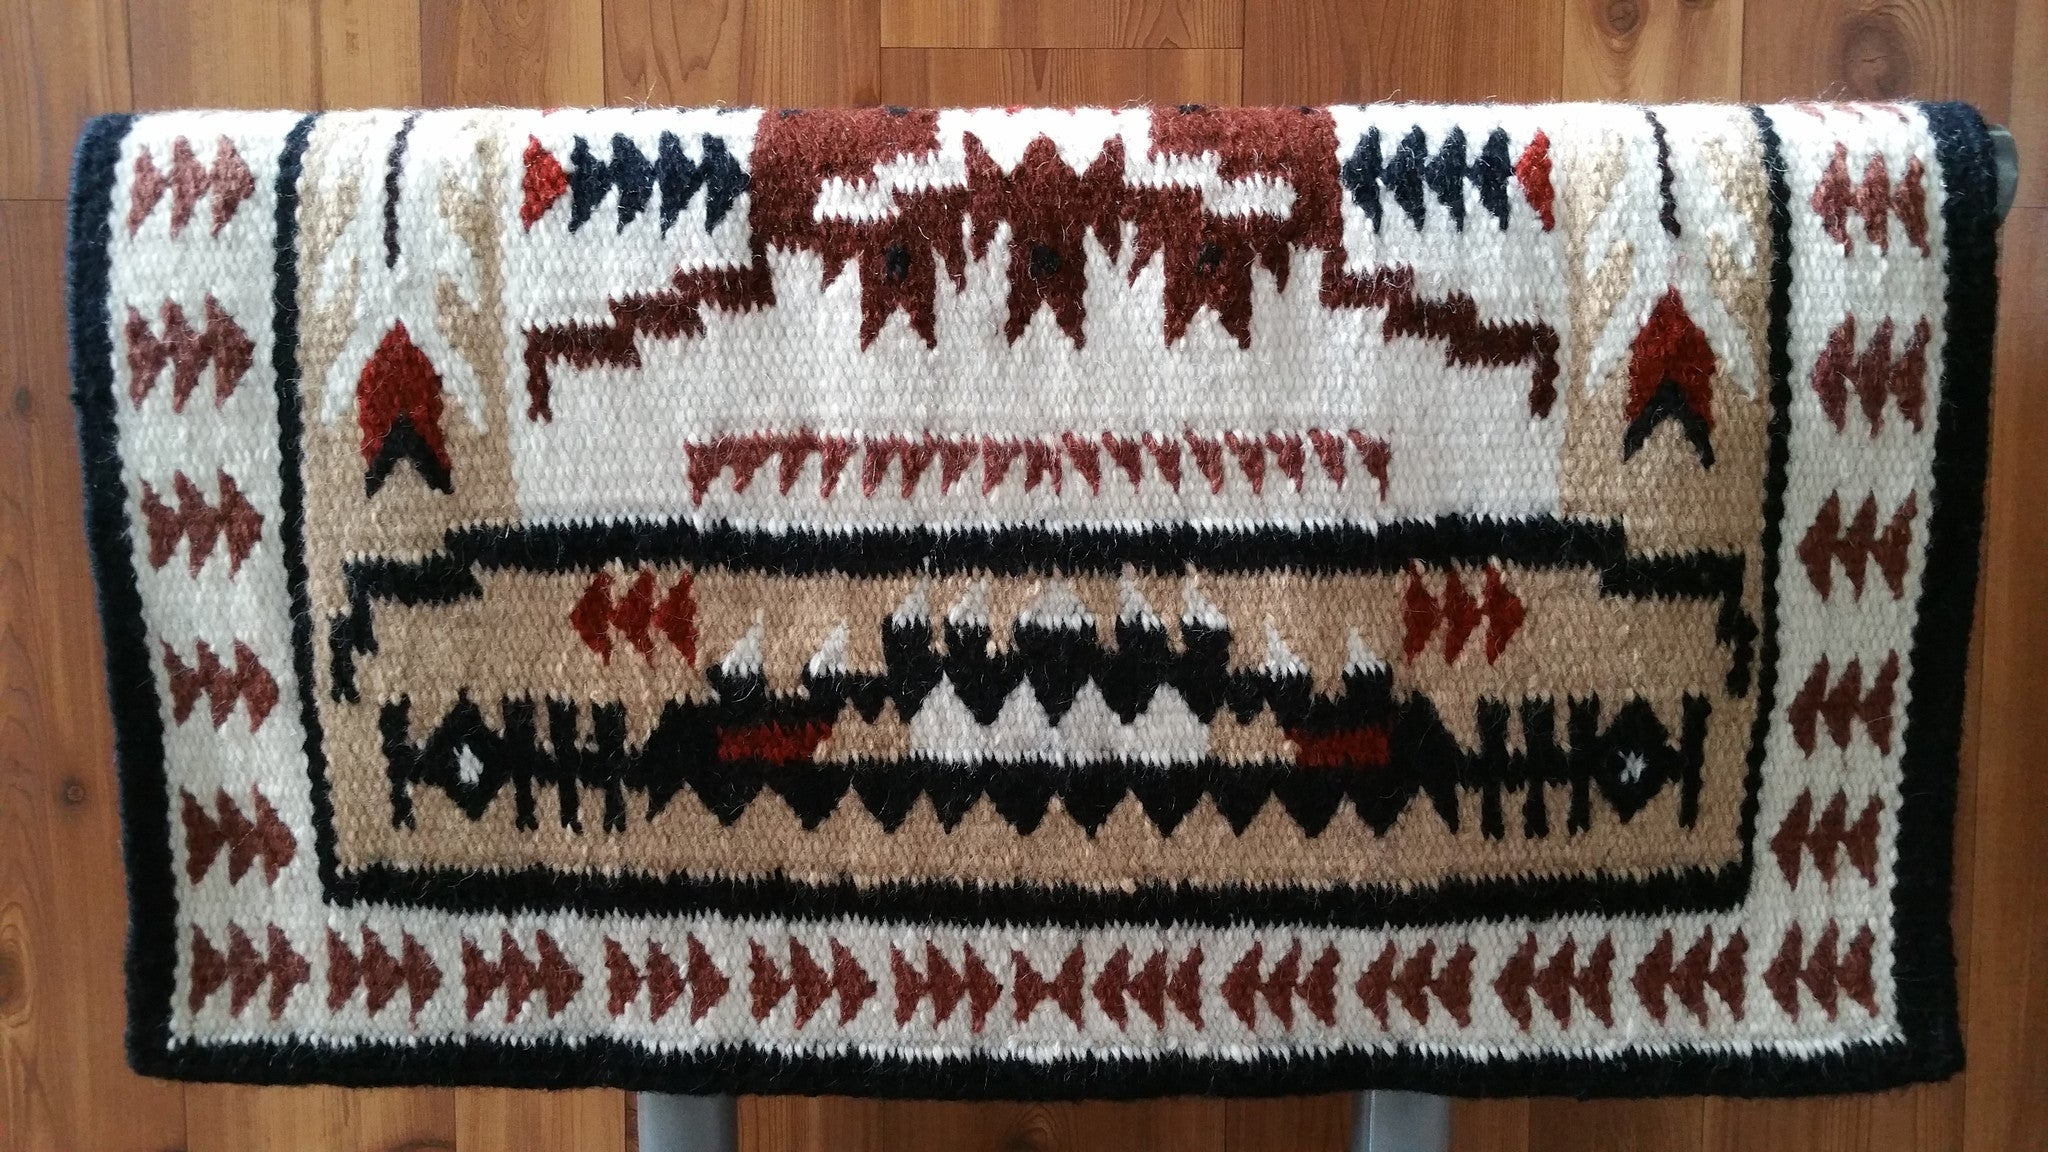 YUCCA FLATS 9 BLANKET - Heck Of A Lope